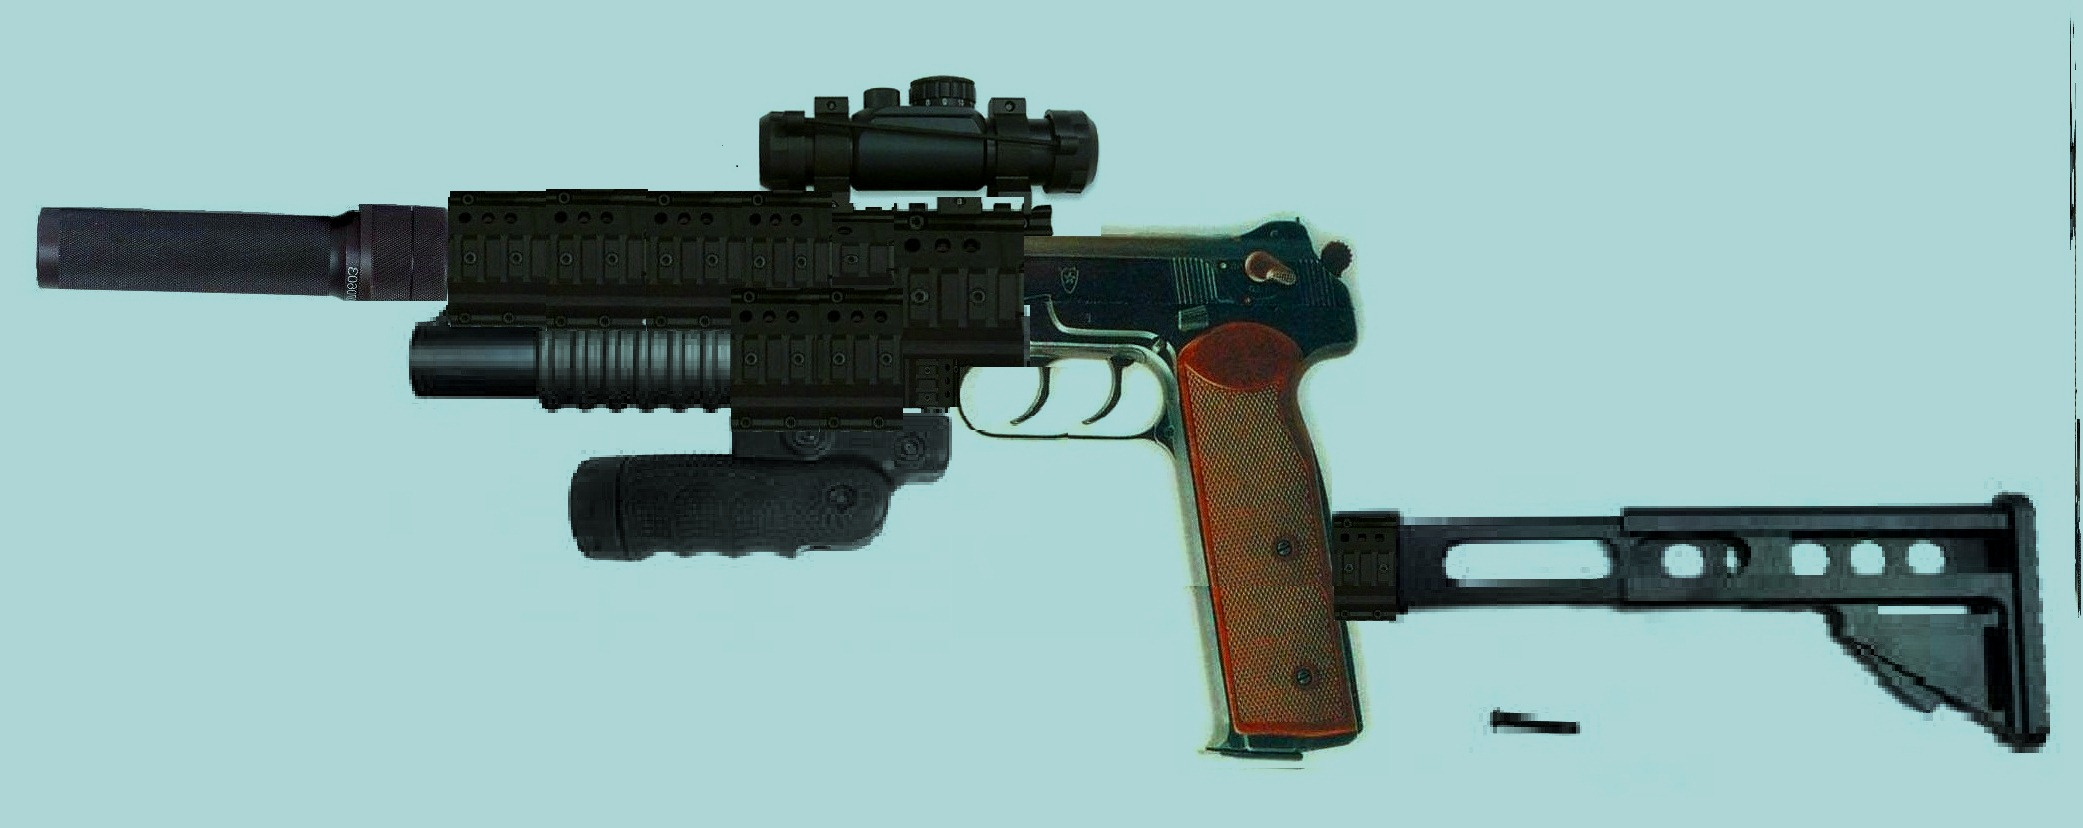 Element PBS-1 Silencer_enl.jpg